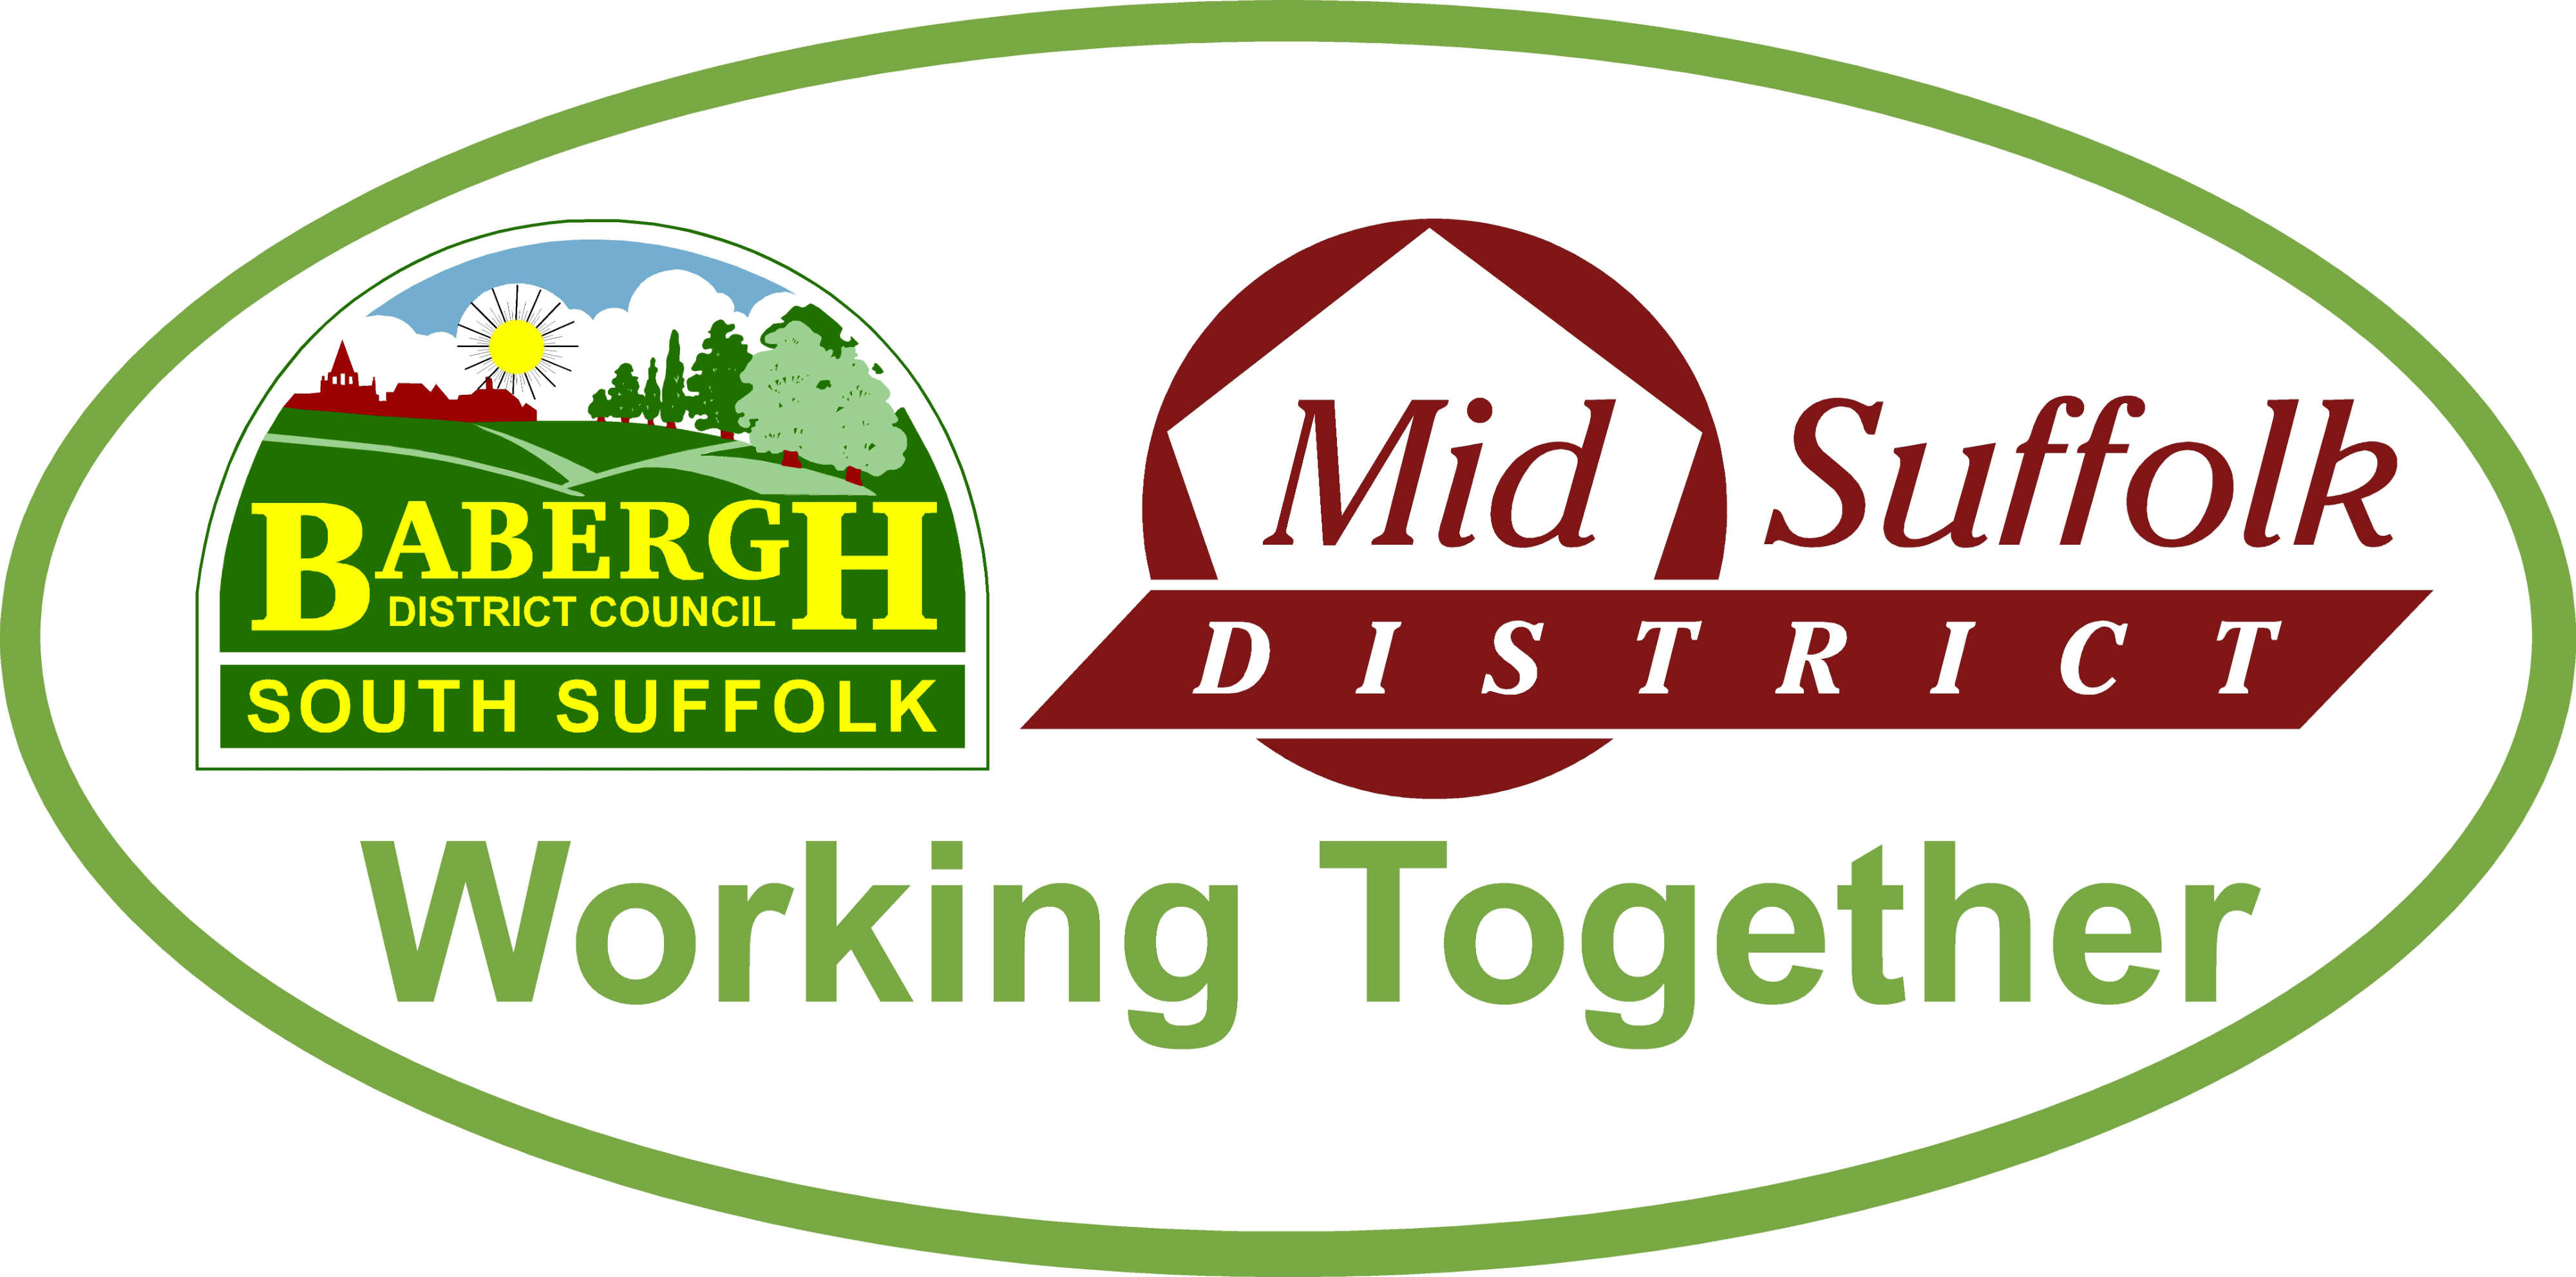 Babergh District Council and Mid Suffolk District Council